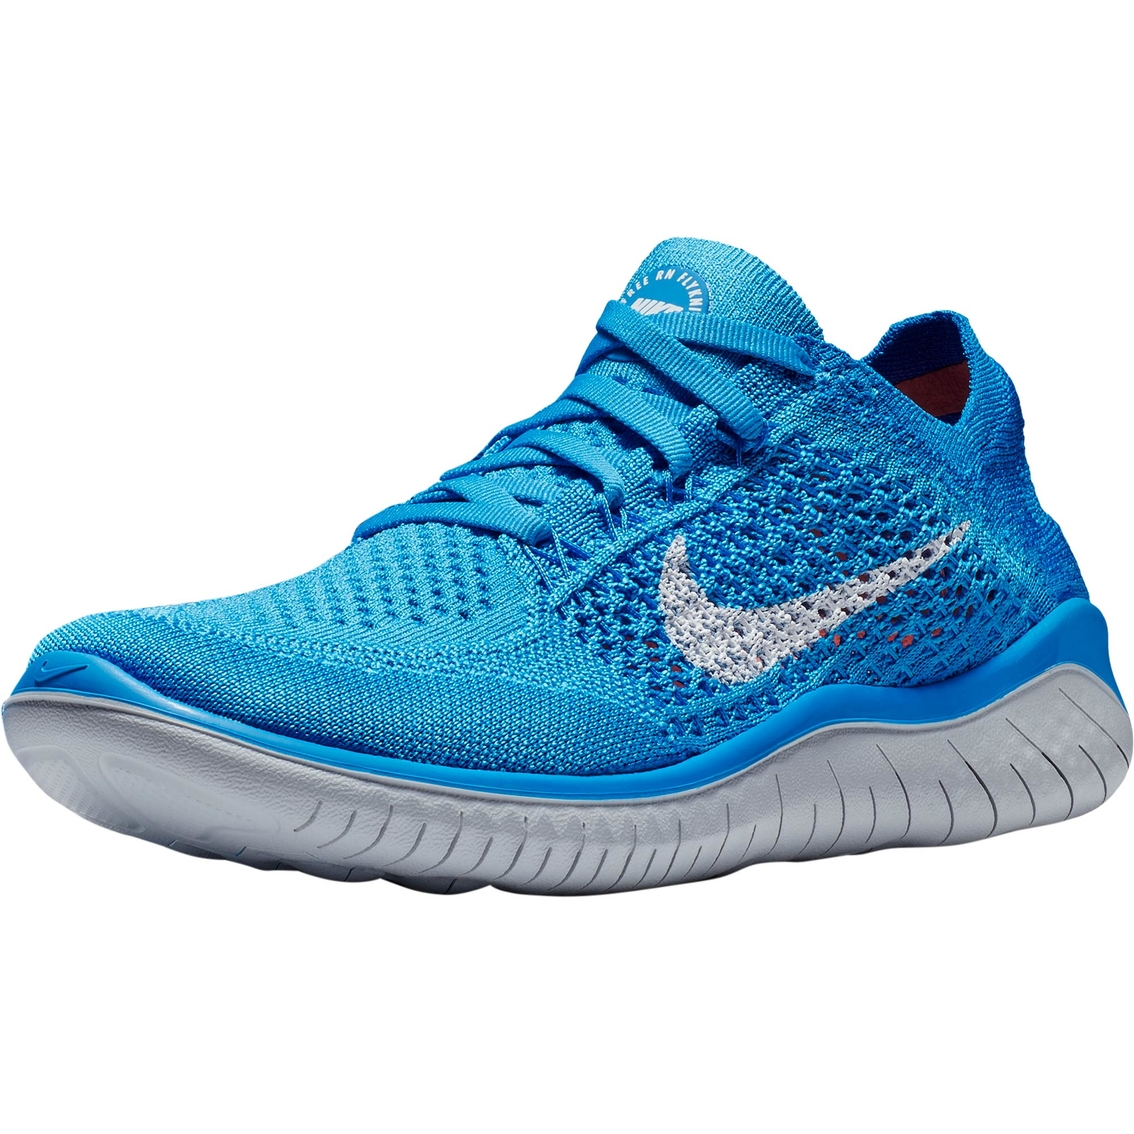 6602d7b311c Nike Women's Free Rn Flyknit 2018 Running Shoes | Running | Back To ...